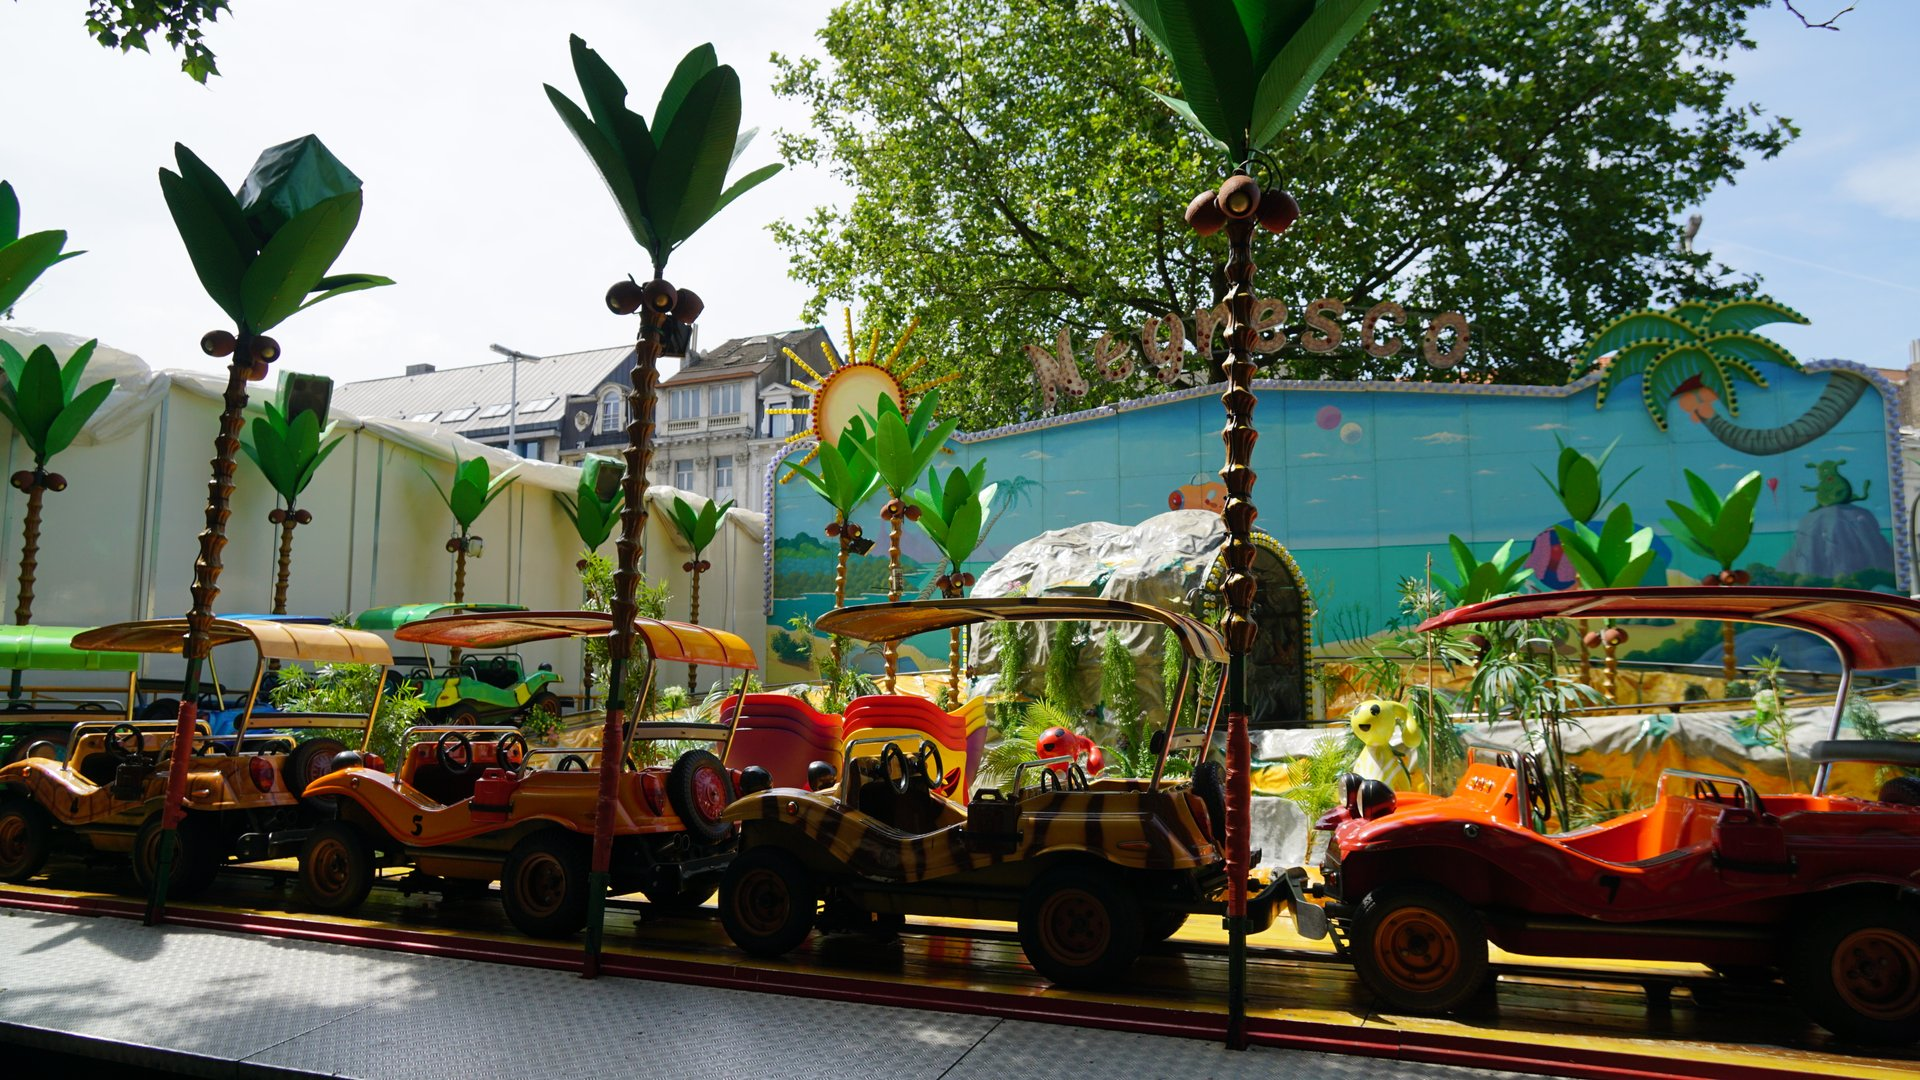 Best time for Foire du Midi in Brussels 2020